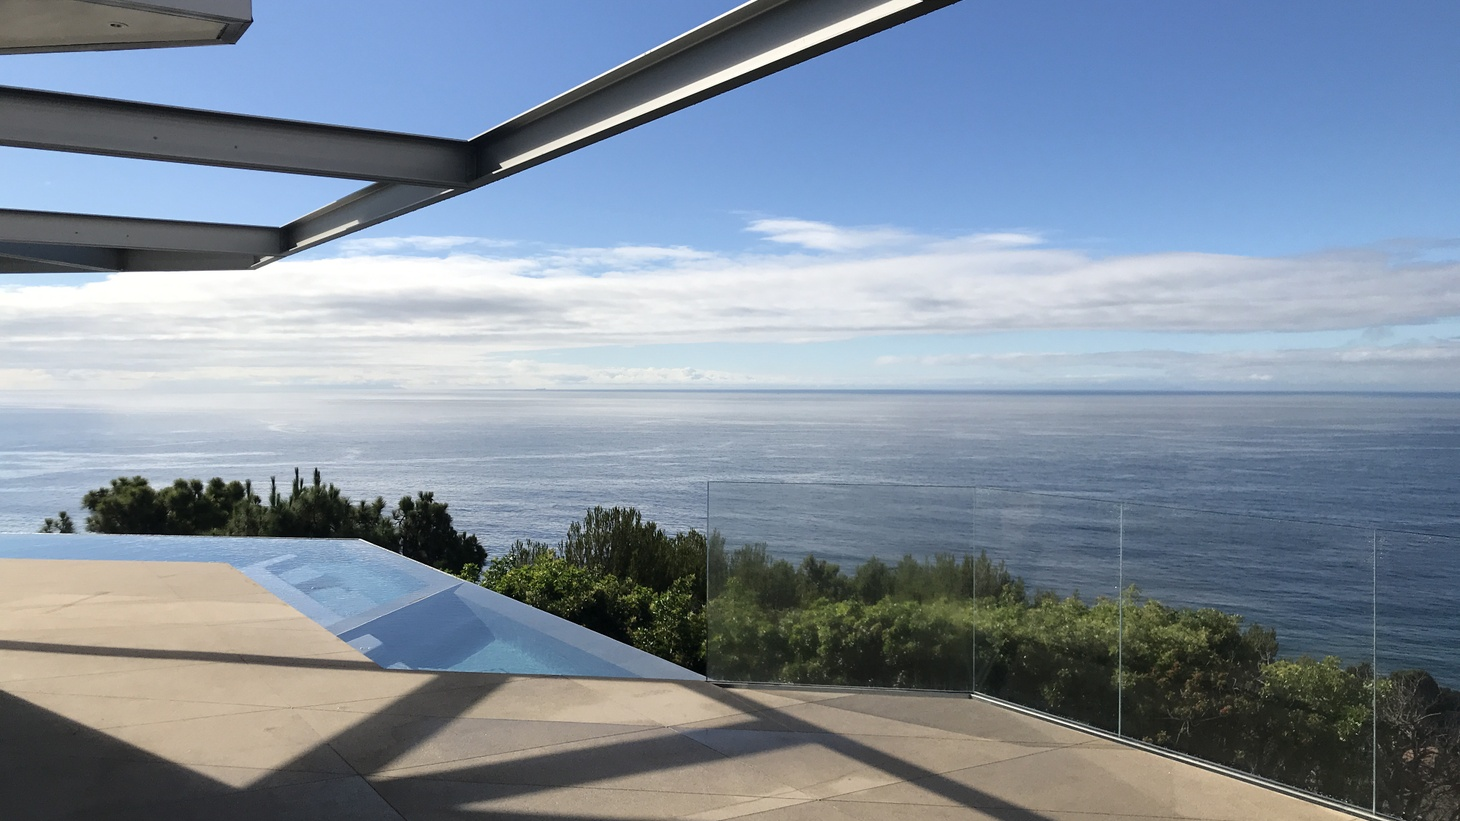 Horizon House, designed by Geoffrey von Oeyen, completed in 2018, follows the line of the hill crest with chamfered canopy, infinity pool and stunning view.